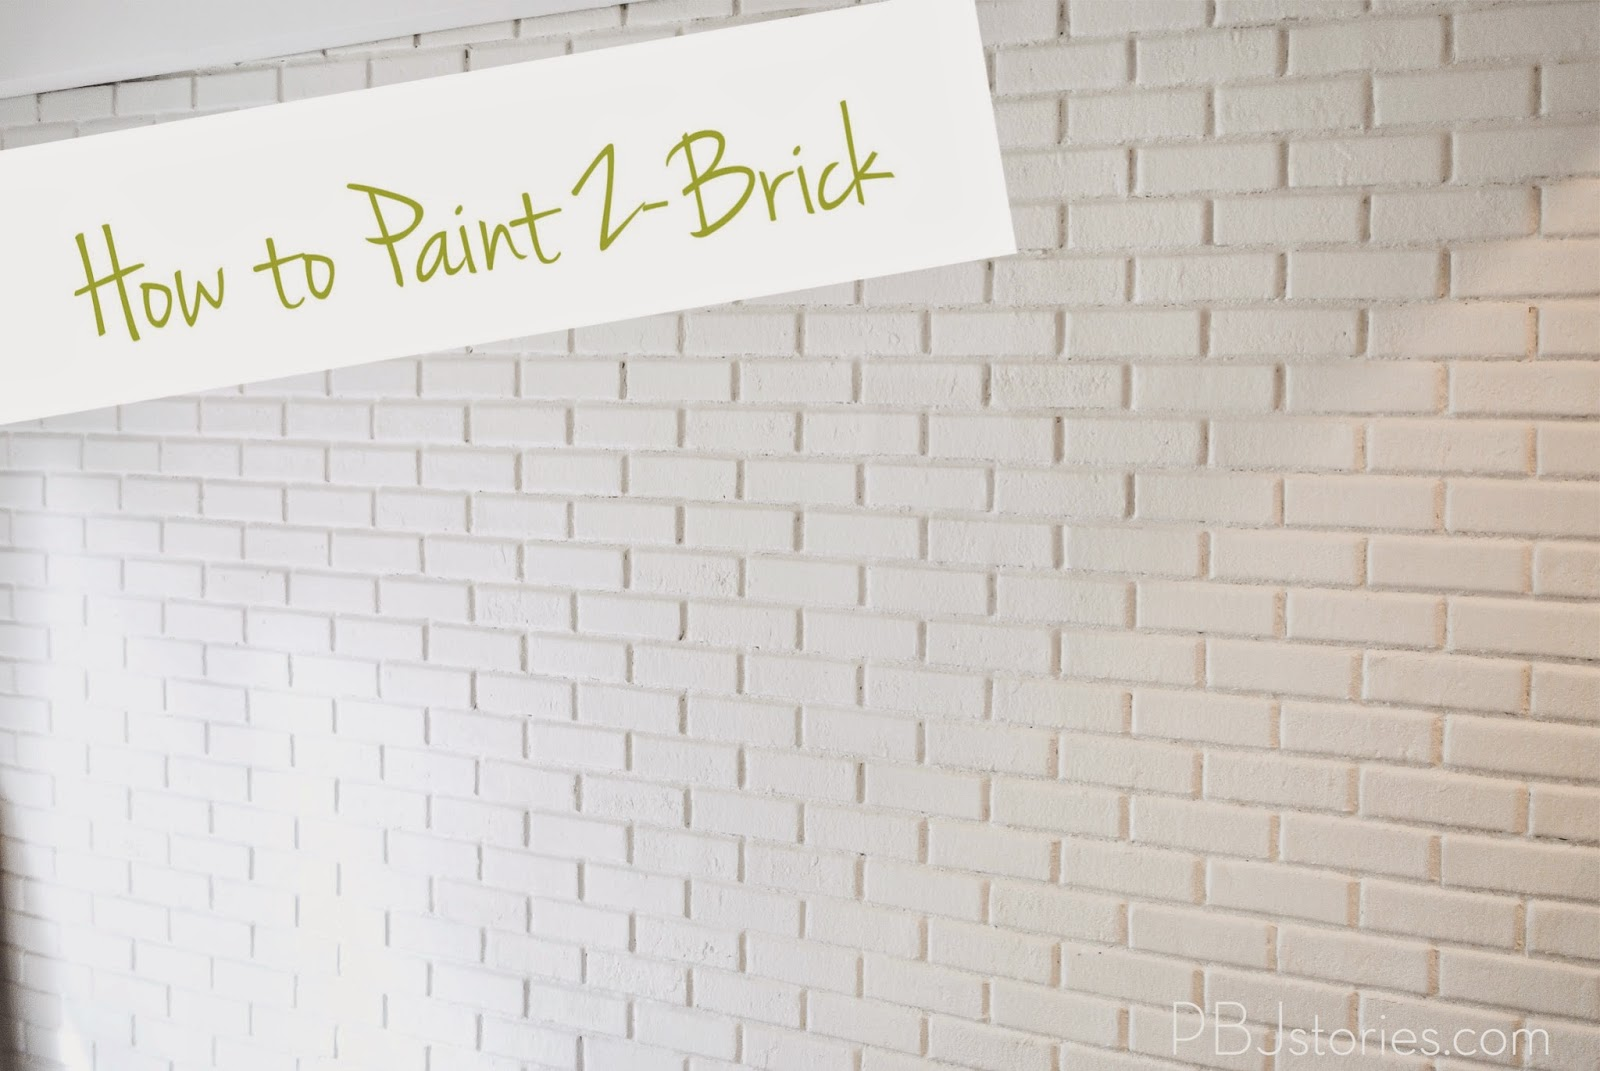 PBJstories: How to Paint an Interior Brick Wall